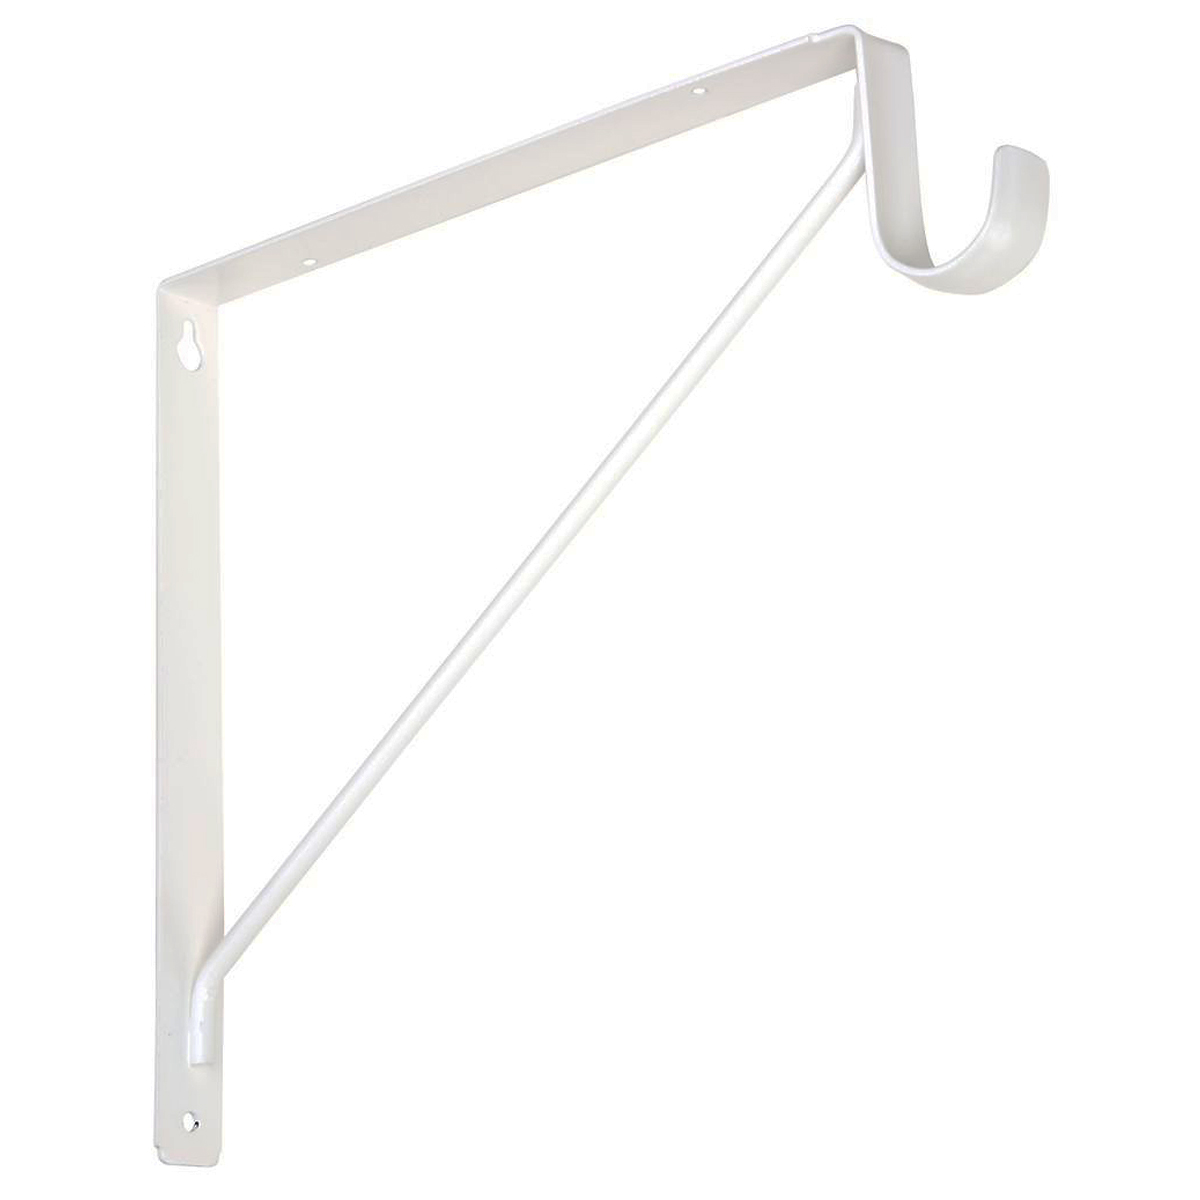 SHELF AND ROD SUPPORT HEAVY DUTY